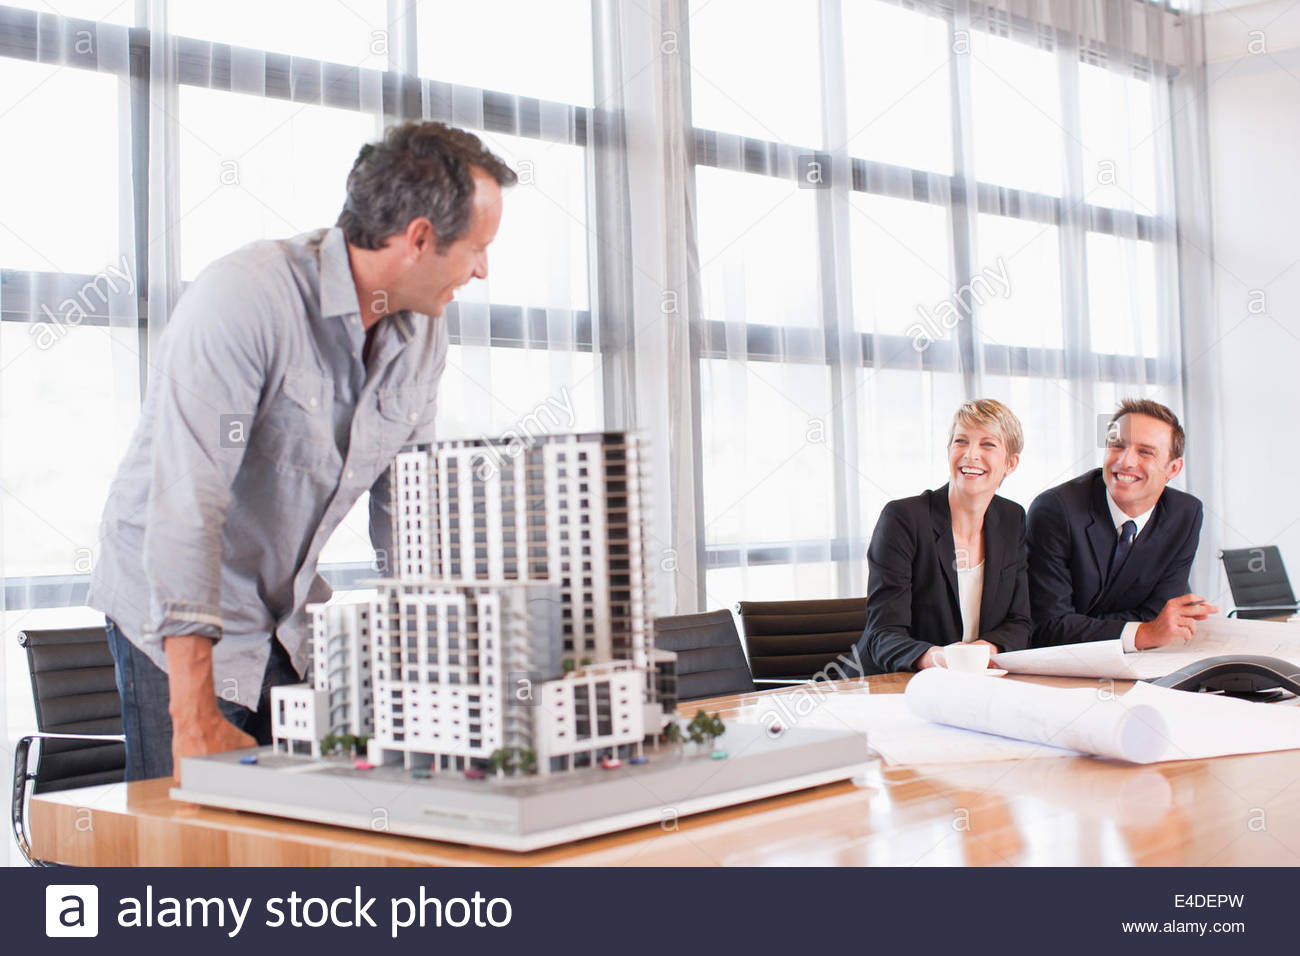 Architects in conference room with building model - Stock Image